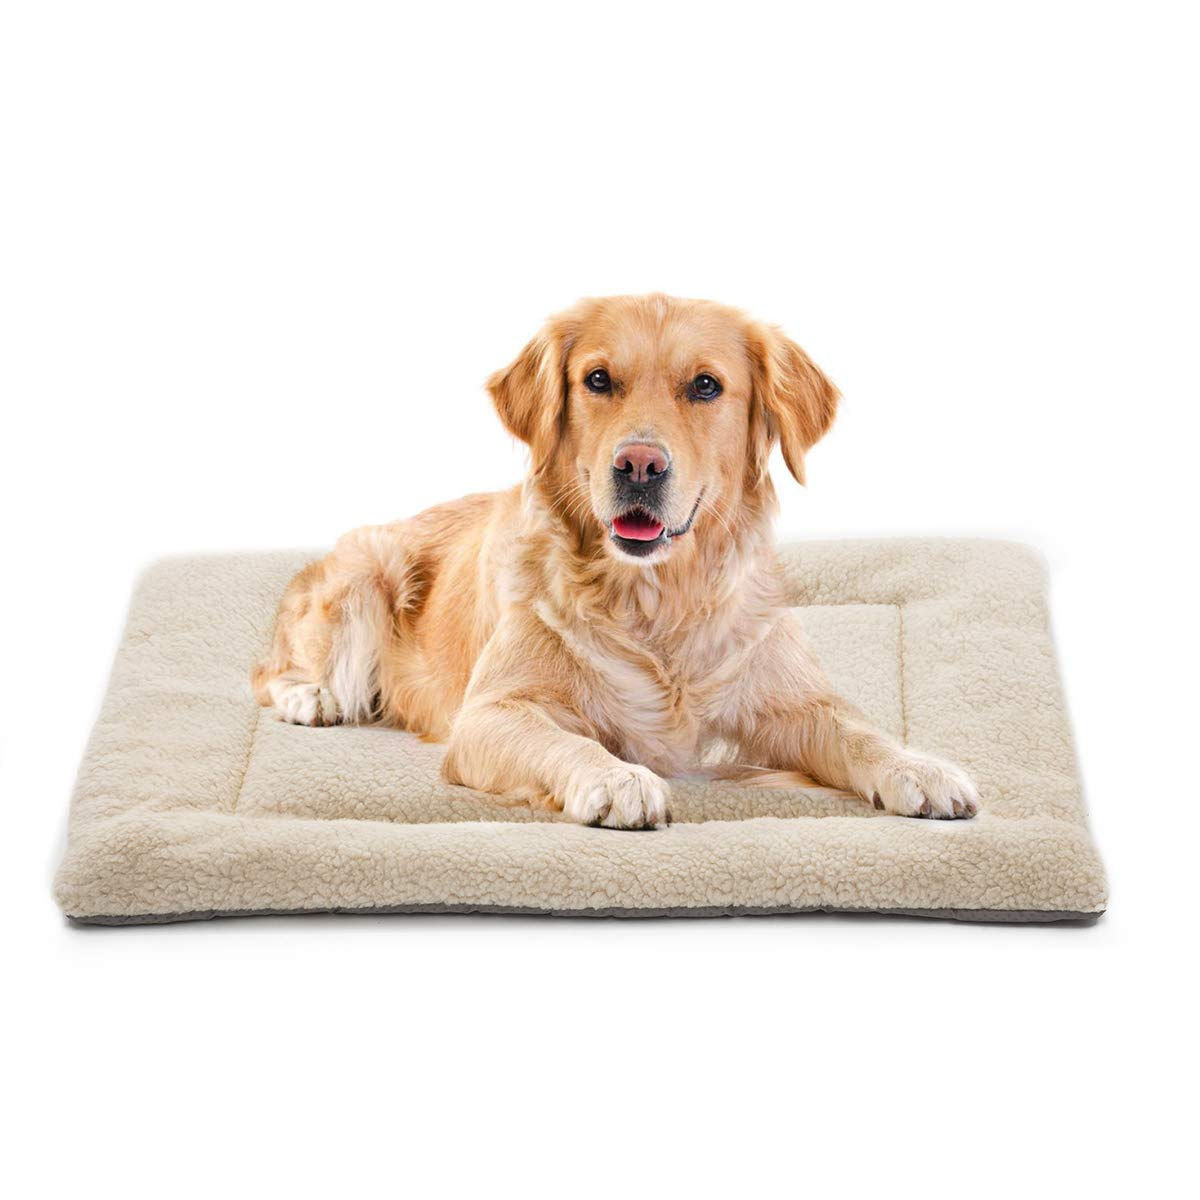 INVENHO Dog Bed Mat Comfortable Soft Crate Pad Anti-Slip Machine Washable Pad Dog Crate Pad Pet Bed for Dogs & Cats Beige 35'' x 23''